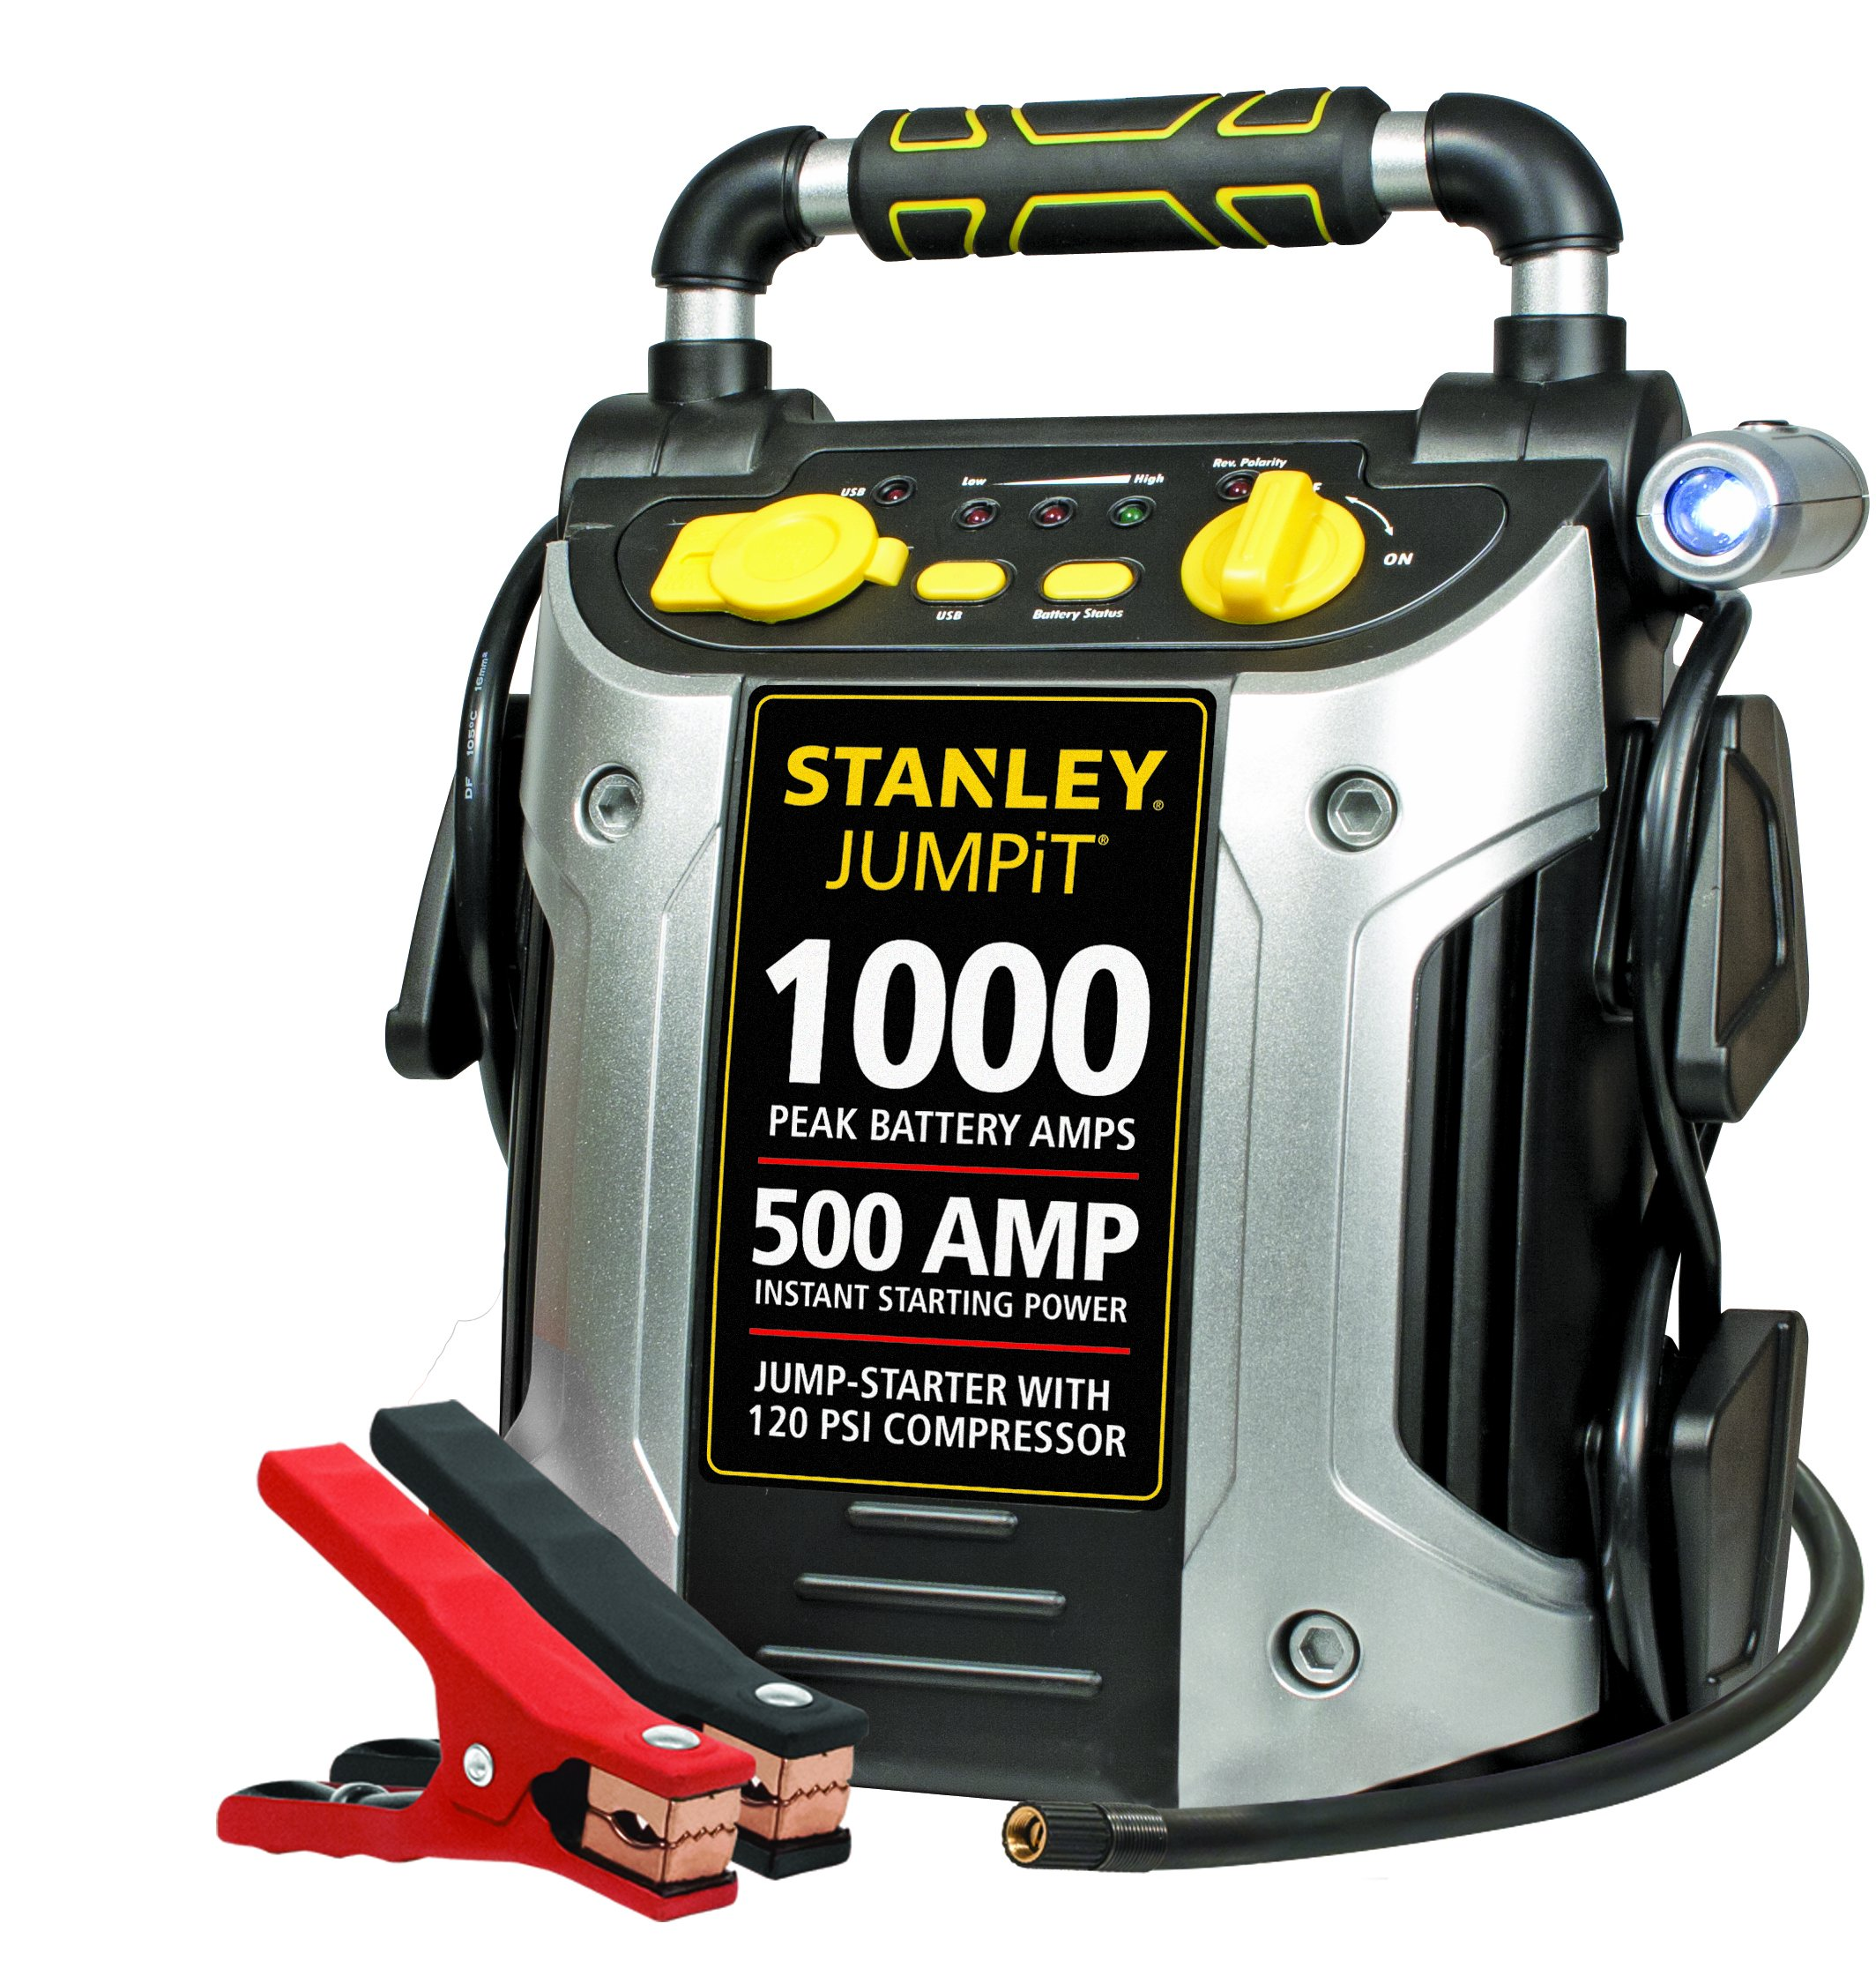 STANLEY J5C09 Power Station Jump Starter: 1000 Peak/500 Instant Amps, 120 PSI Air Compressor, Battery Clamps by STANLEY (Image #1)